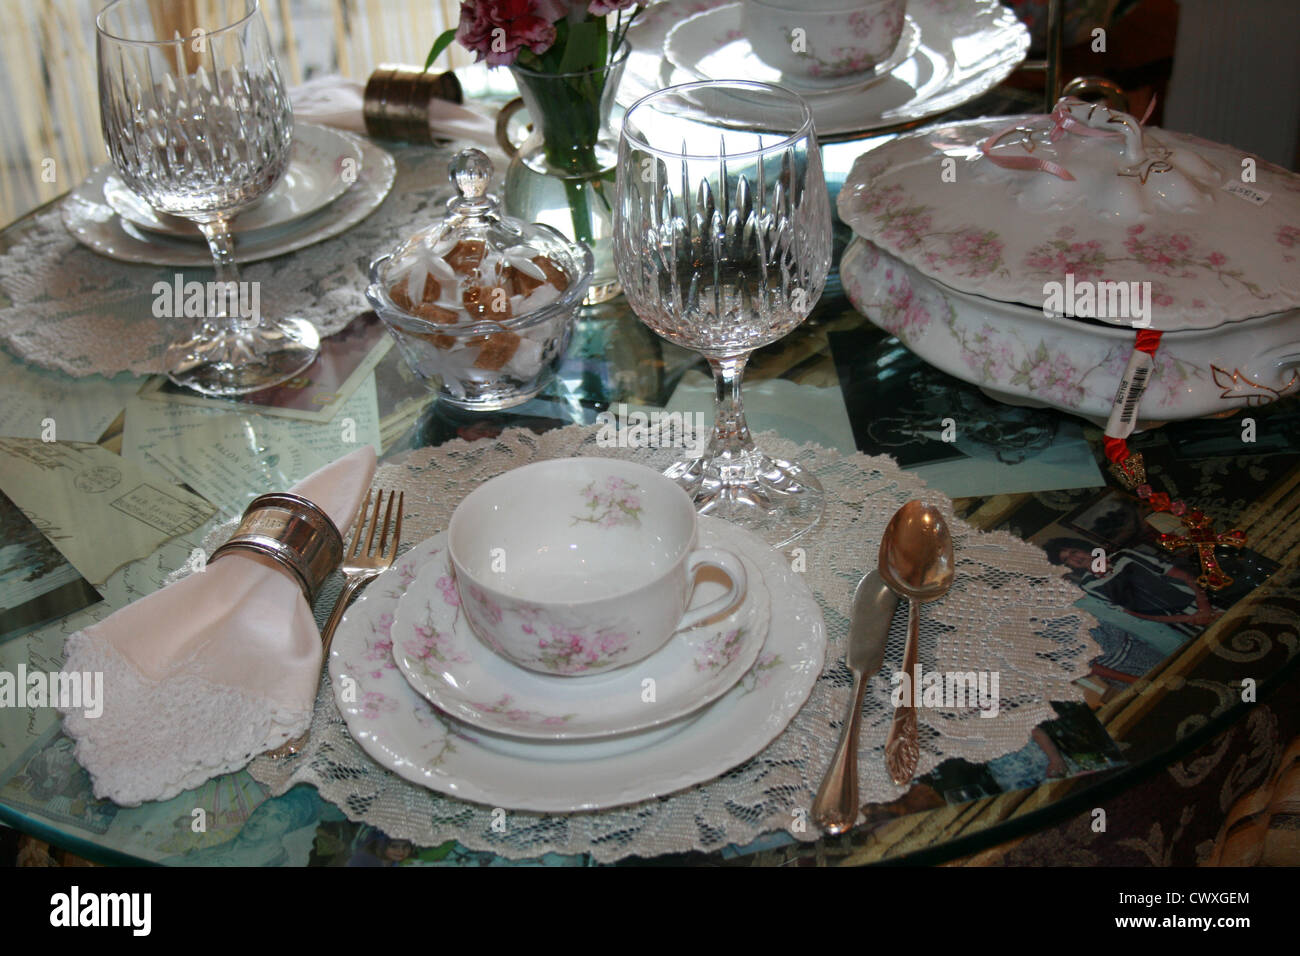 antique dinner setting porcelain china lace crystal dinnerware and silverware & antique dinner setting porcelain china lace crystal dinnerware and ...